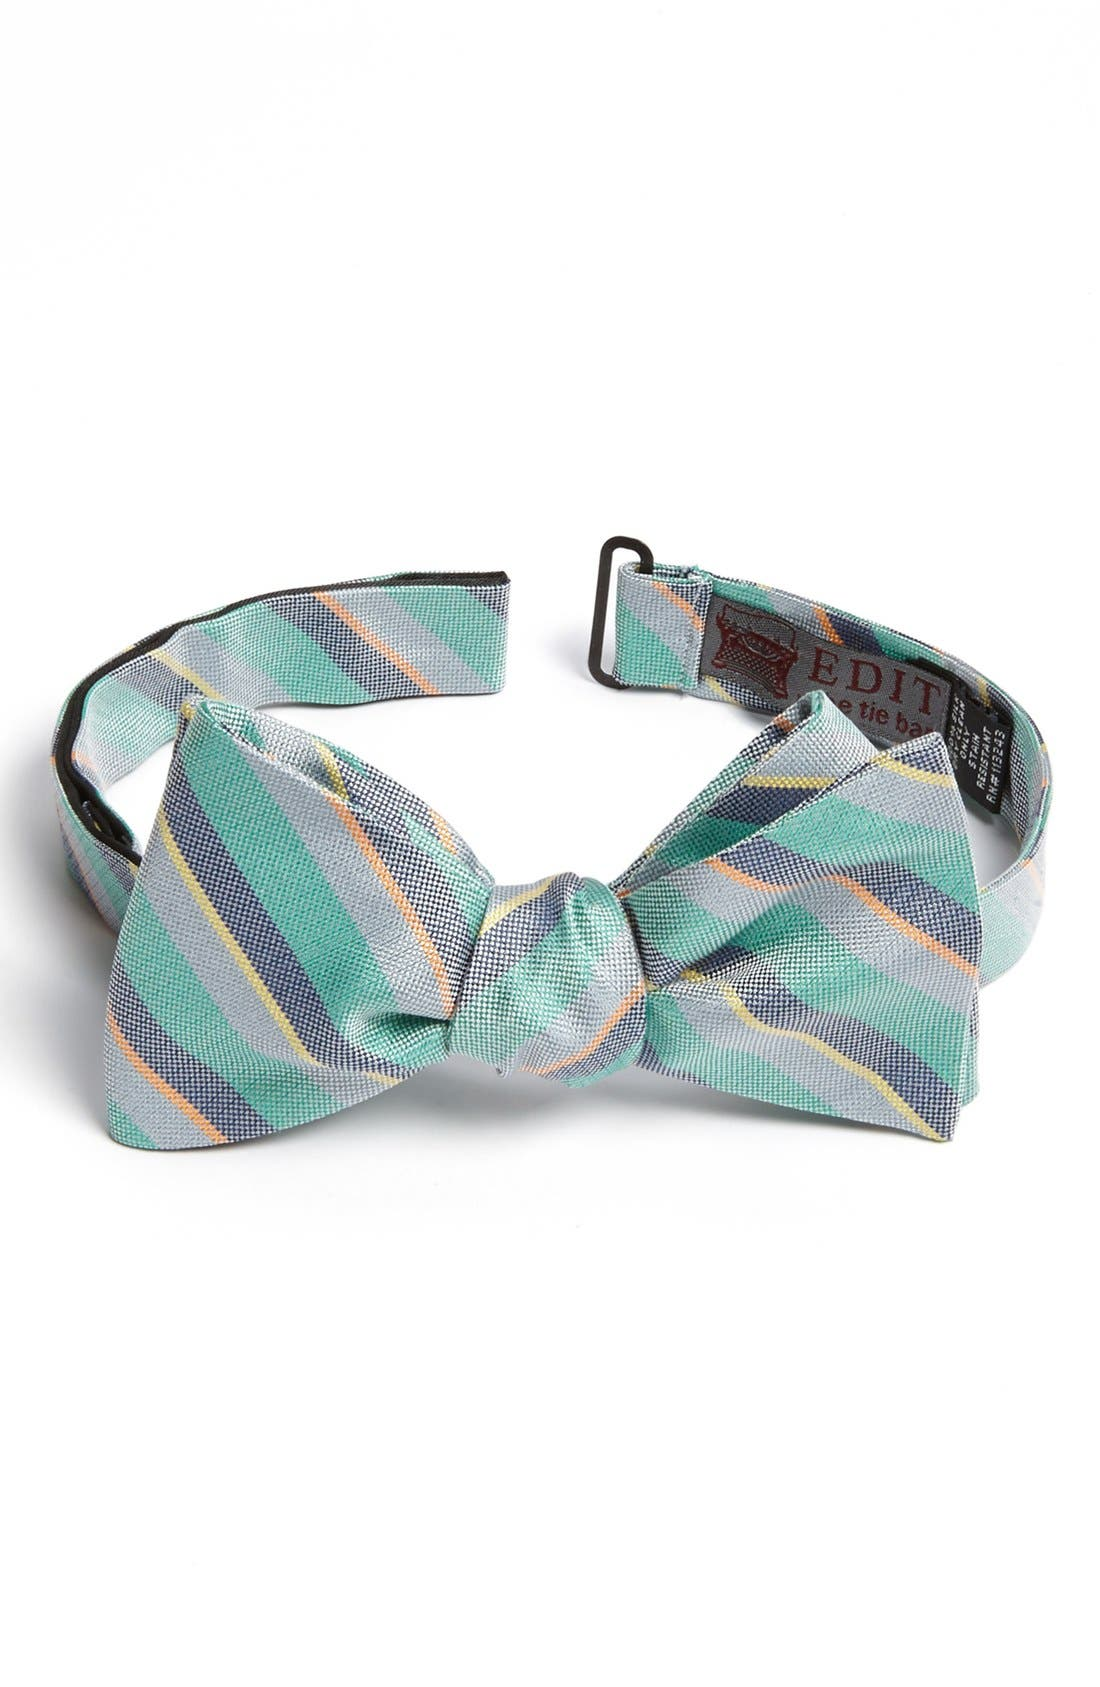 Main Image - EDIT by The Tie Bar Silk Bow Tie (Nordstrom Exclusive)